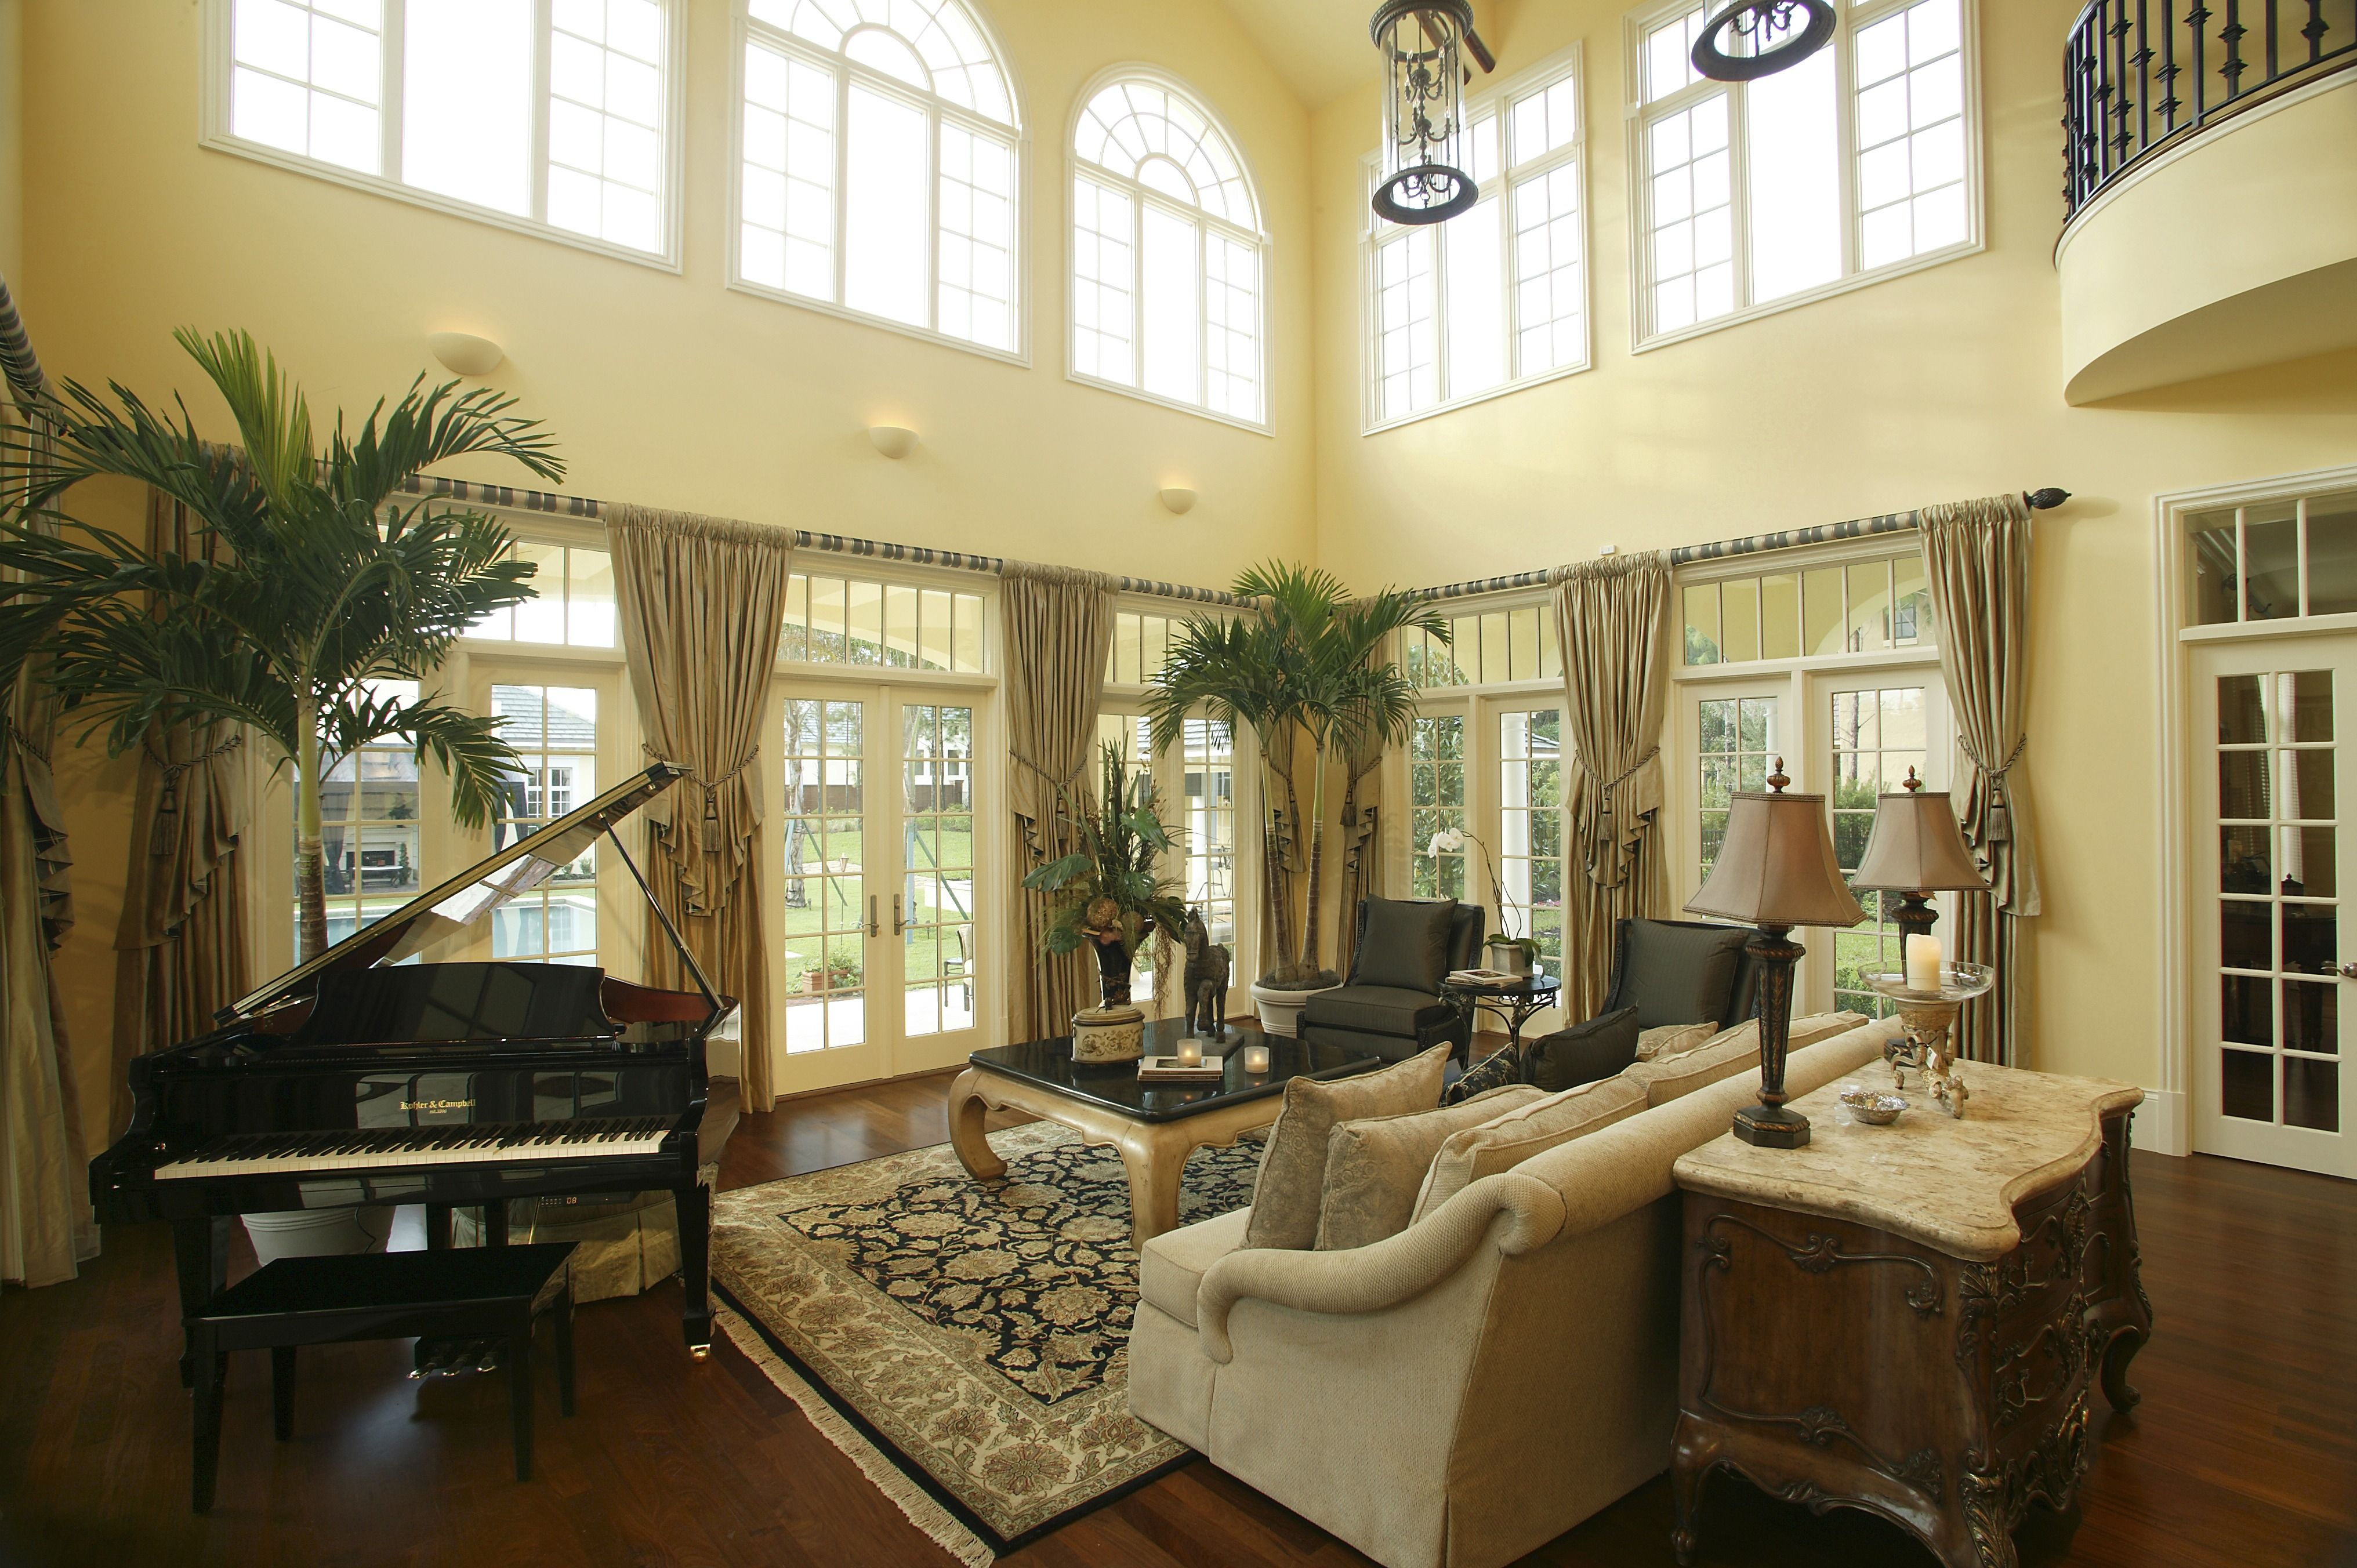 This Is A Neo-classic Traditional Style Living Room With